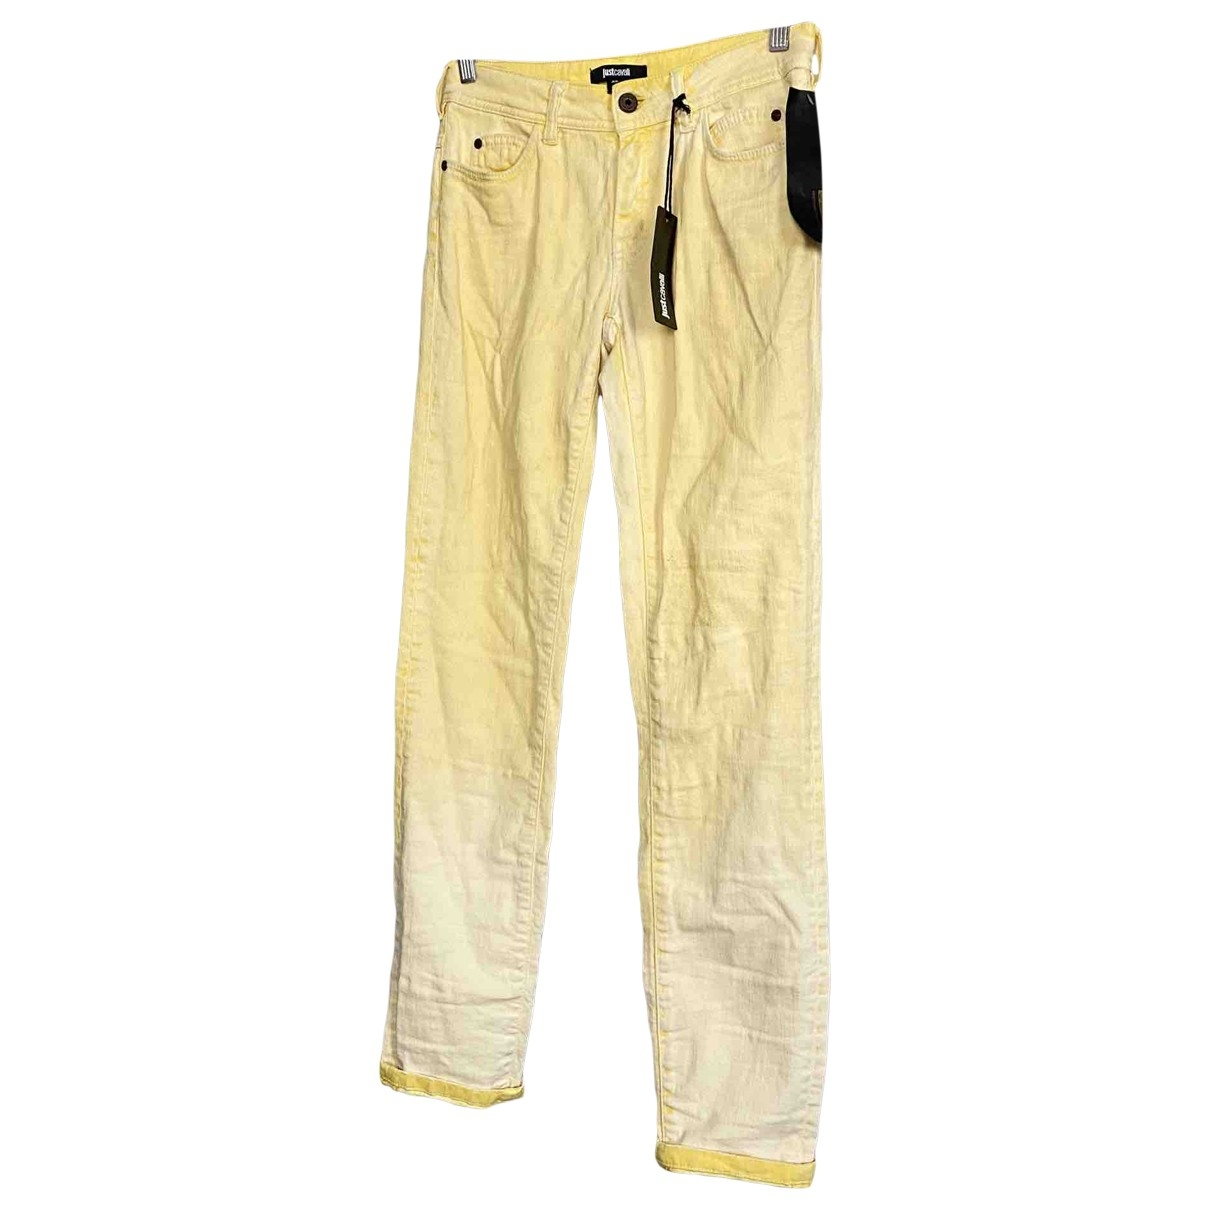 Just Cavalli \N Yellow Cotton - elasthane Jeans for Women 26 US